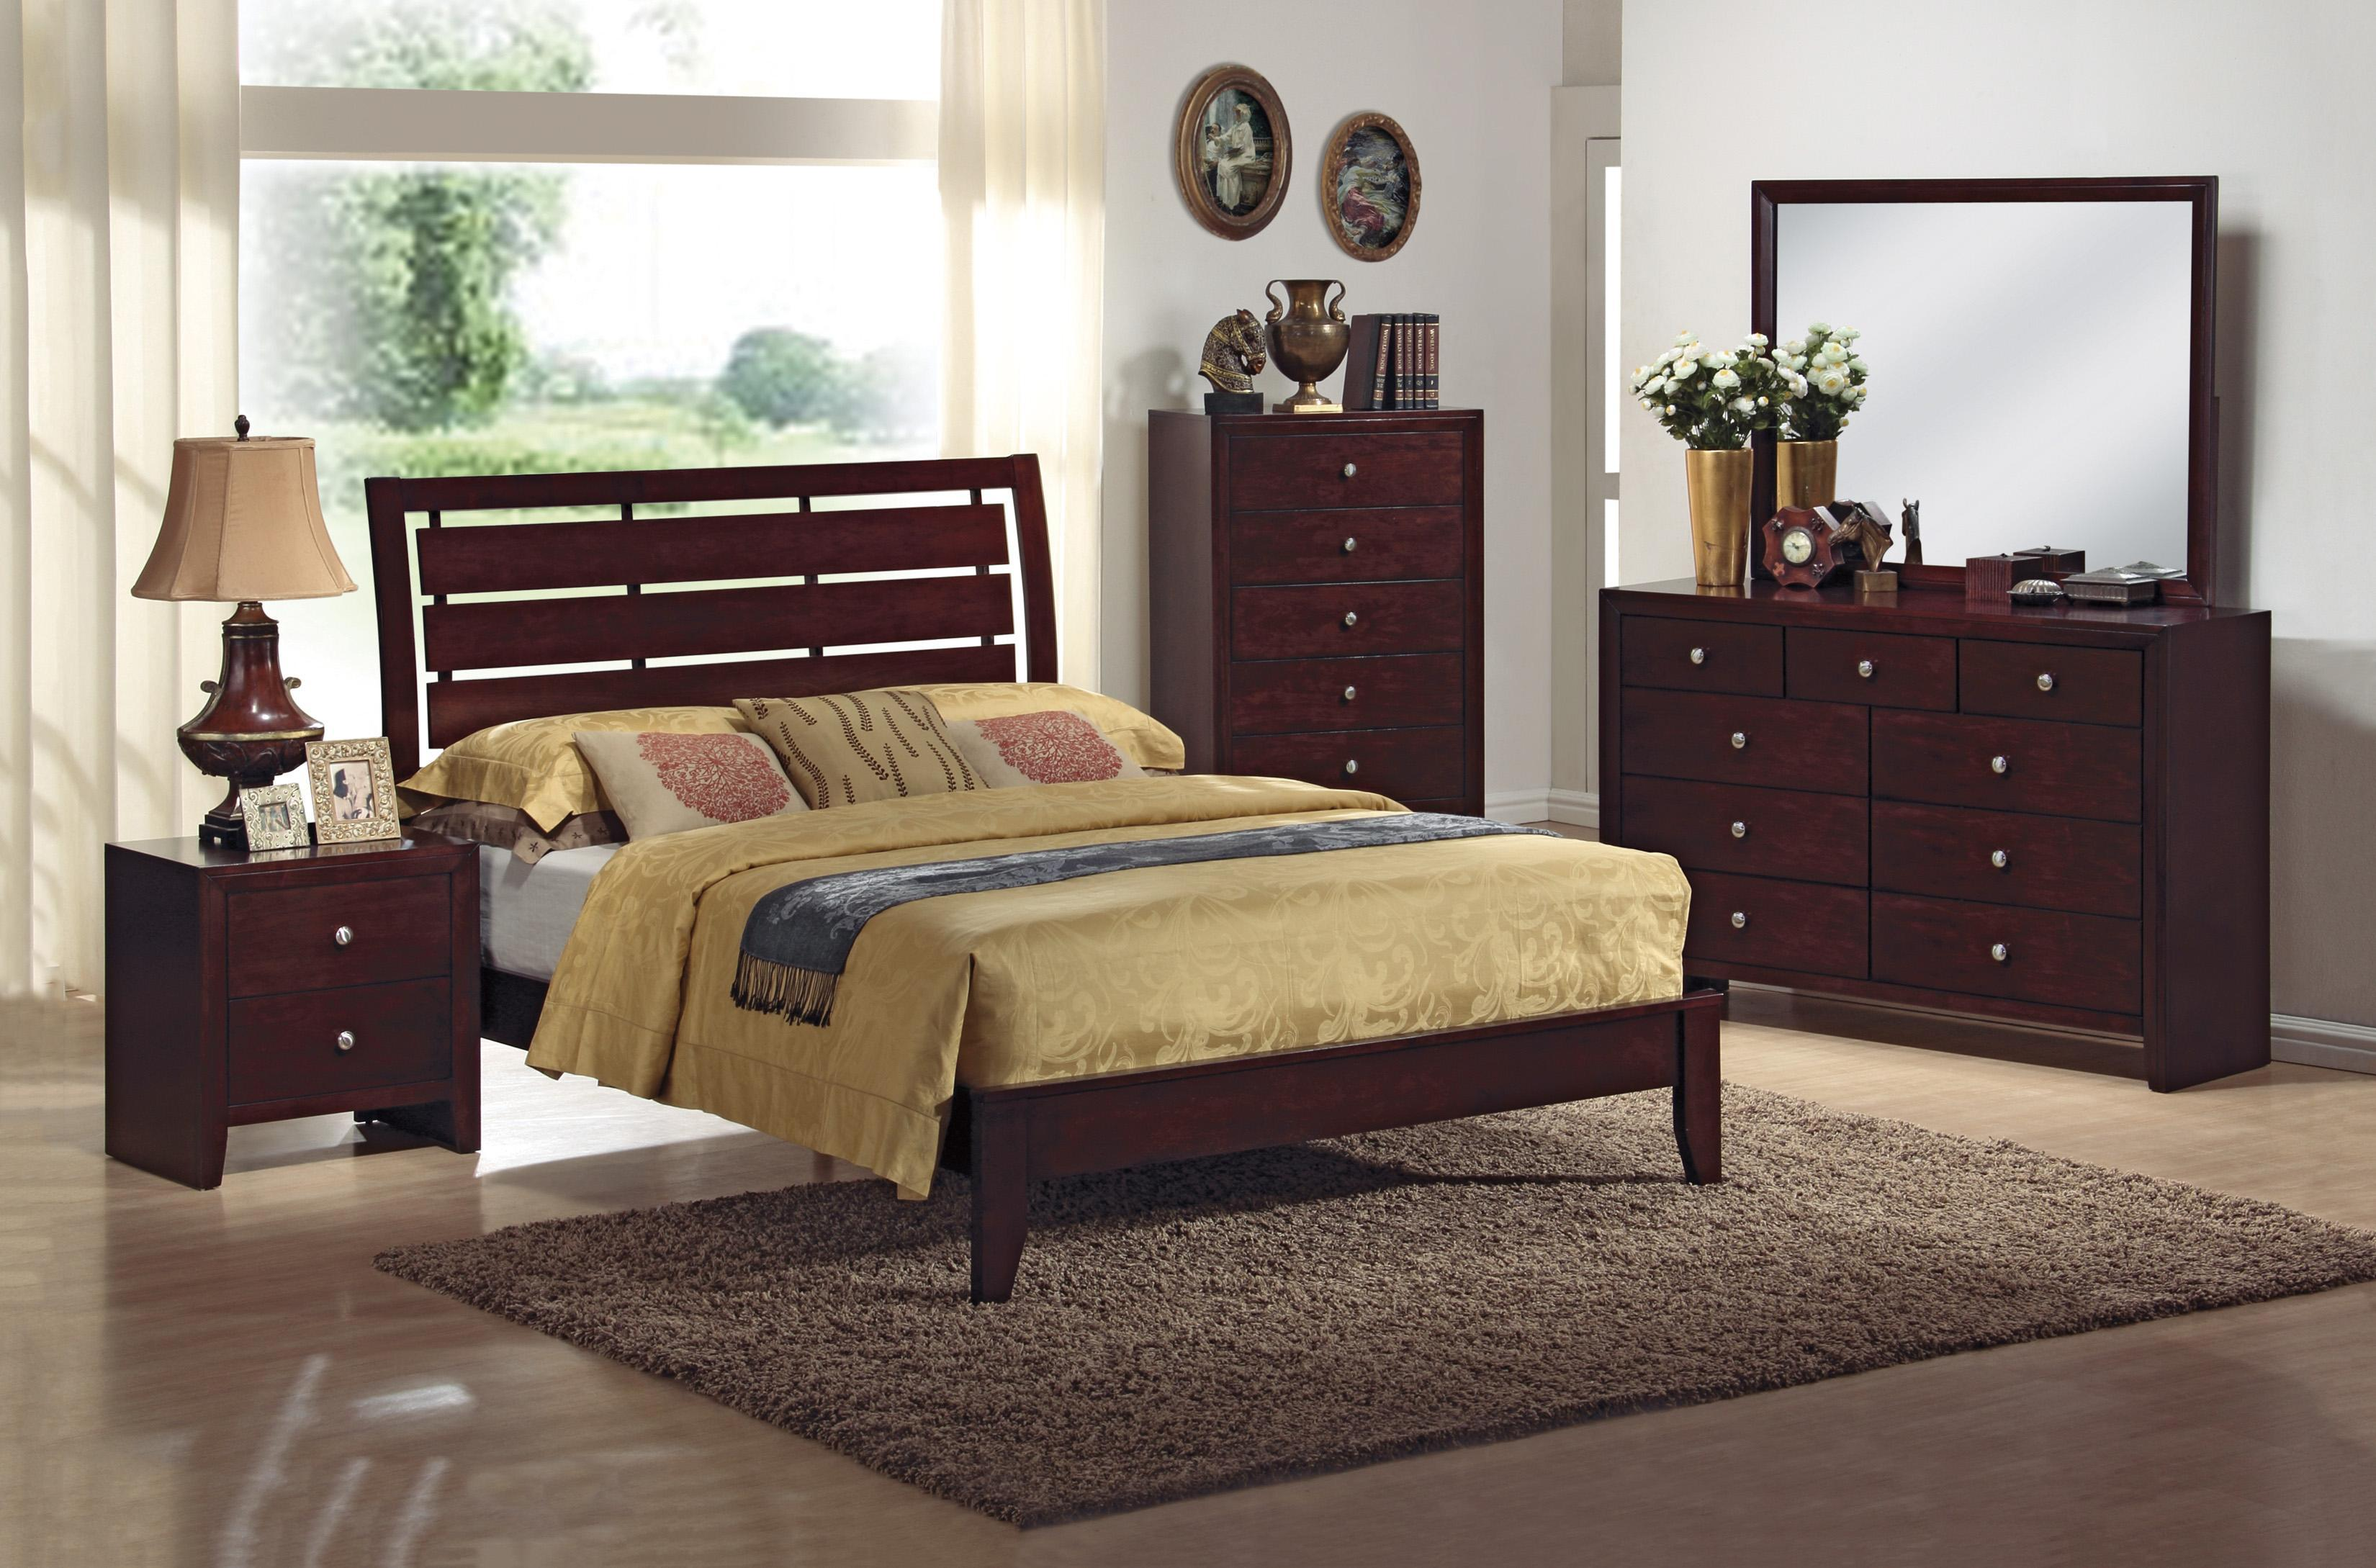 Evan 4 Piece Bedroom Group by Crown Mark at Northeast Factory Direct